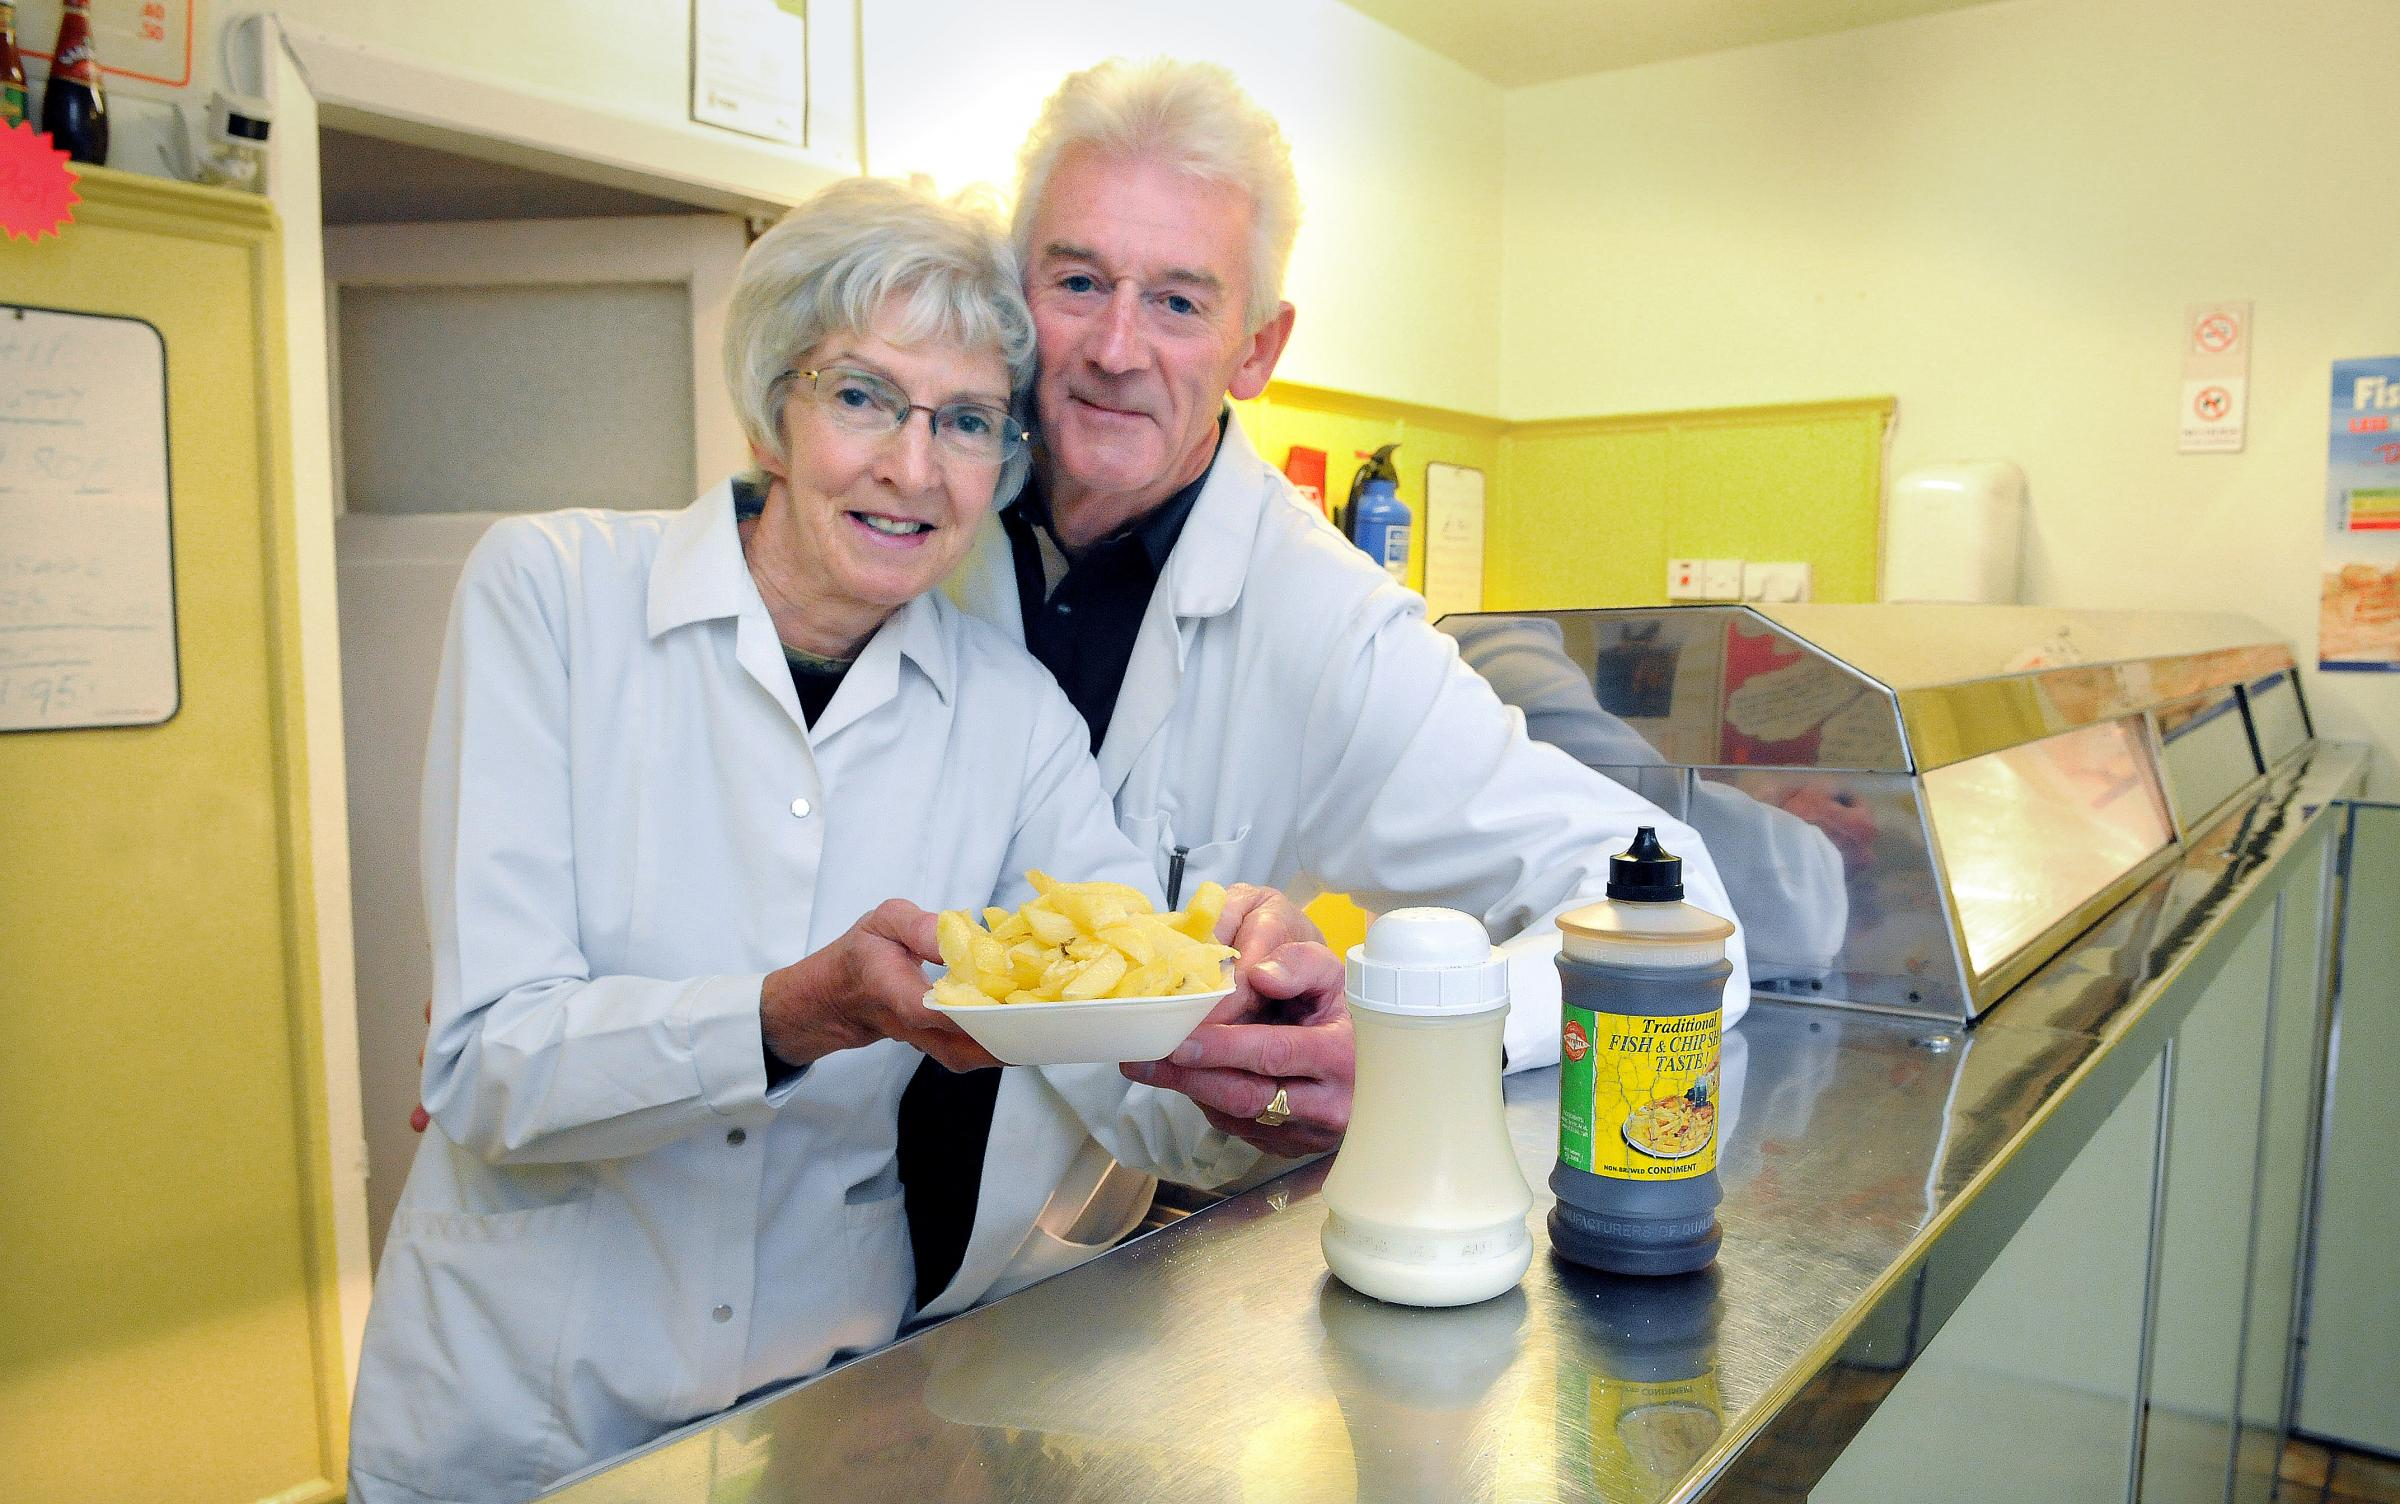 Tony and Margaret Potts, have manned the counter at Tony's Plaice